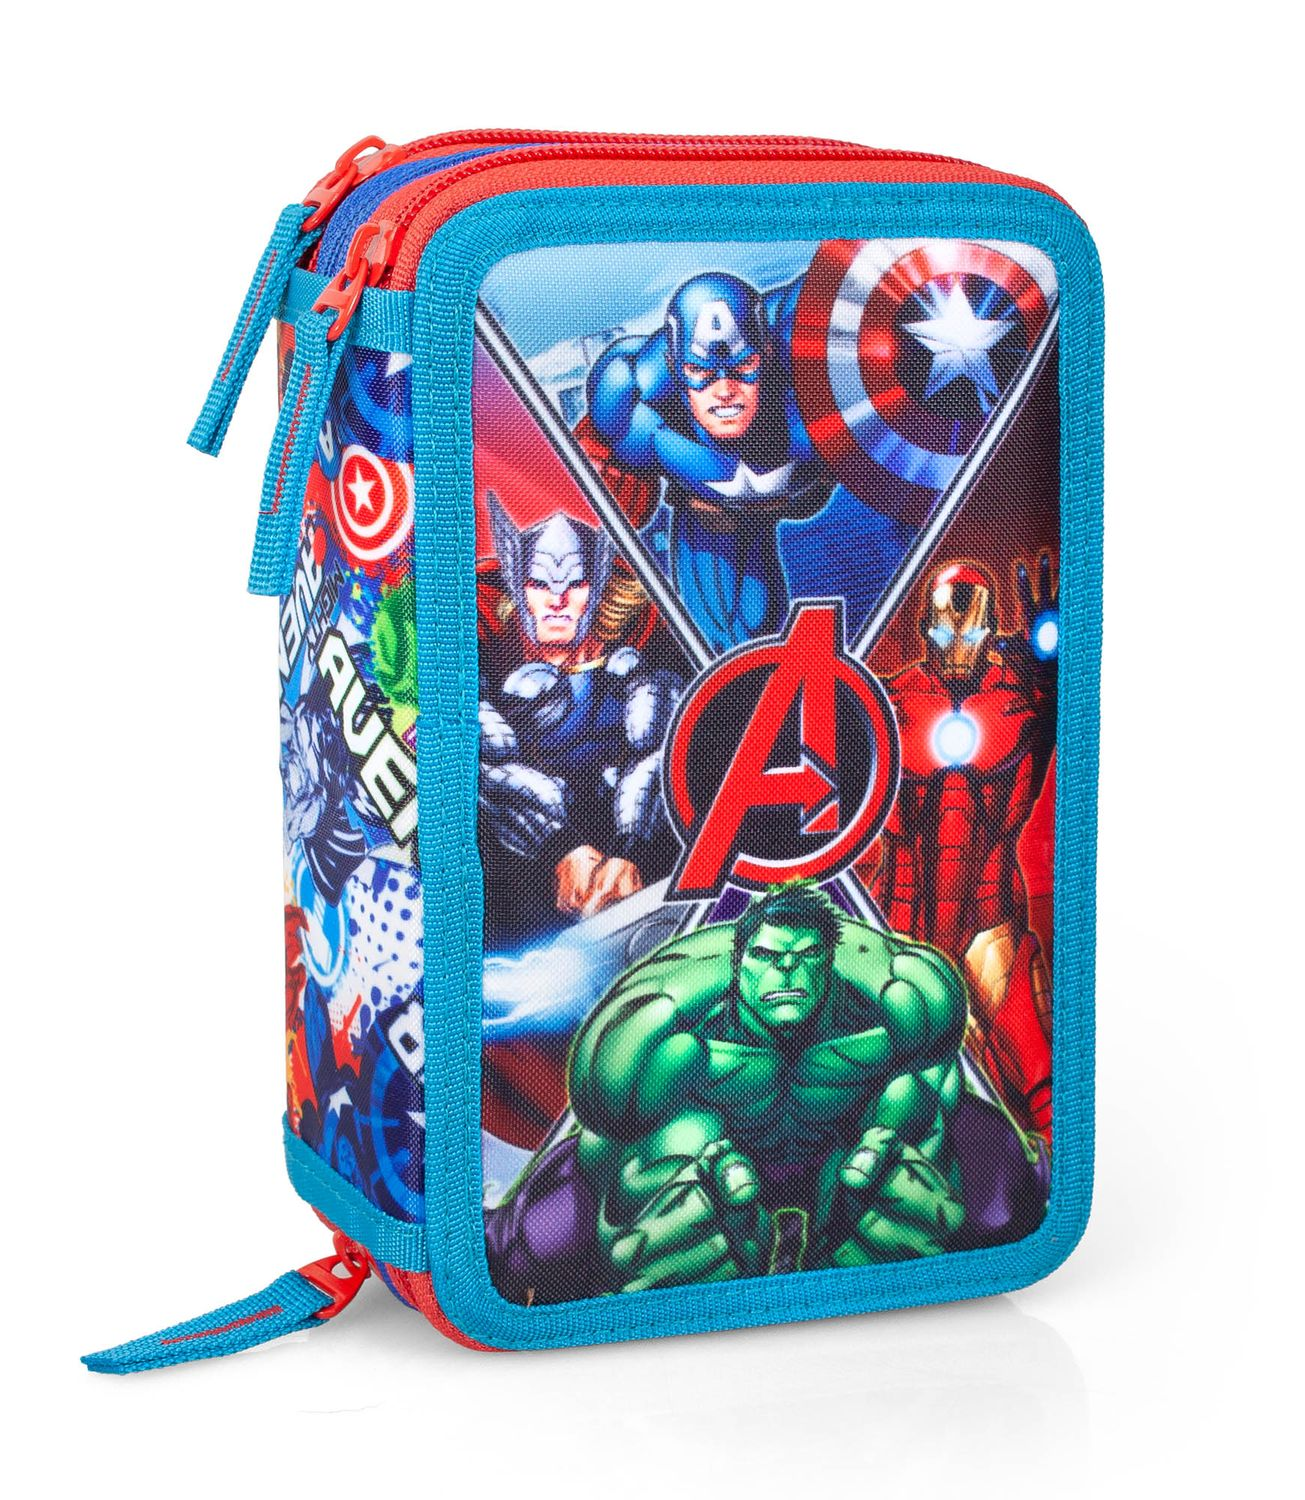 3 Tier Pencil Case AVENGERS Jm – image 1